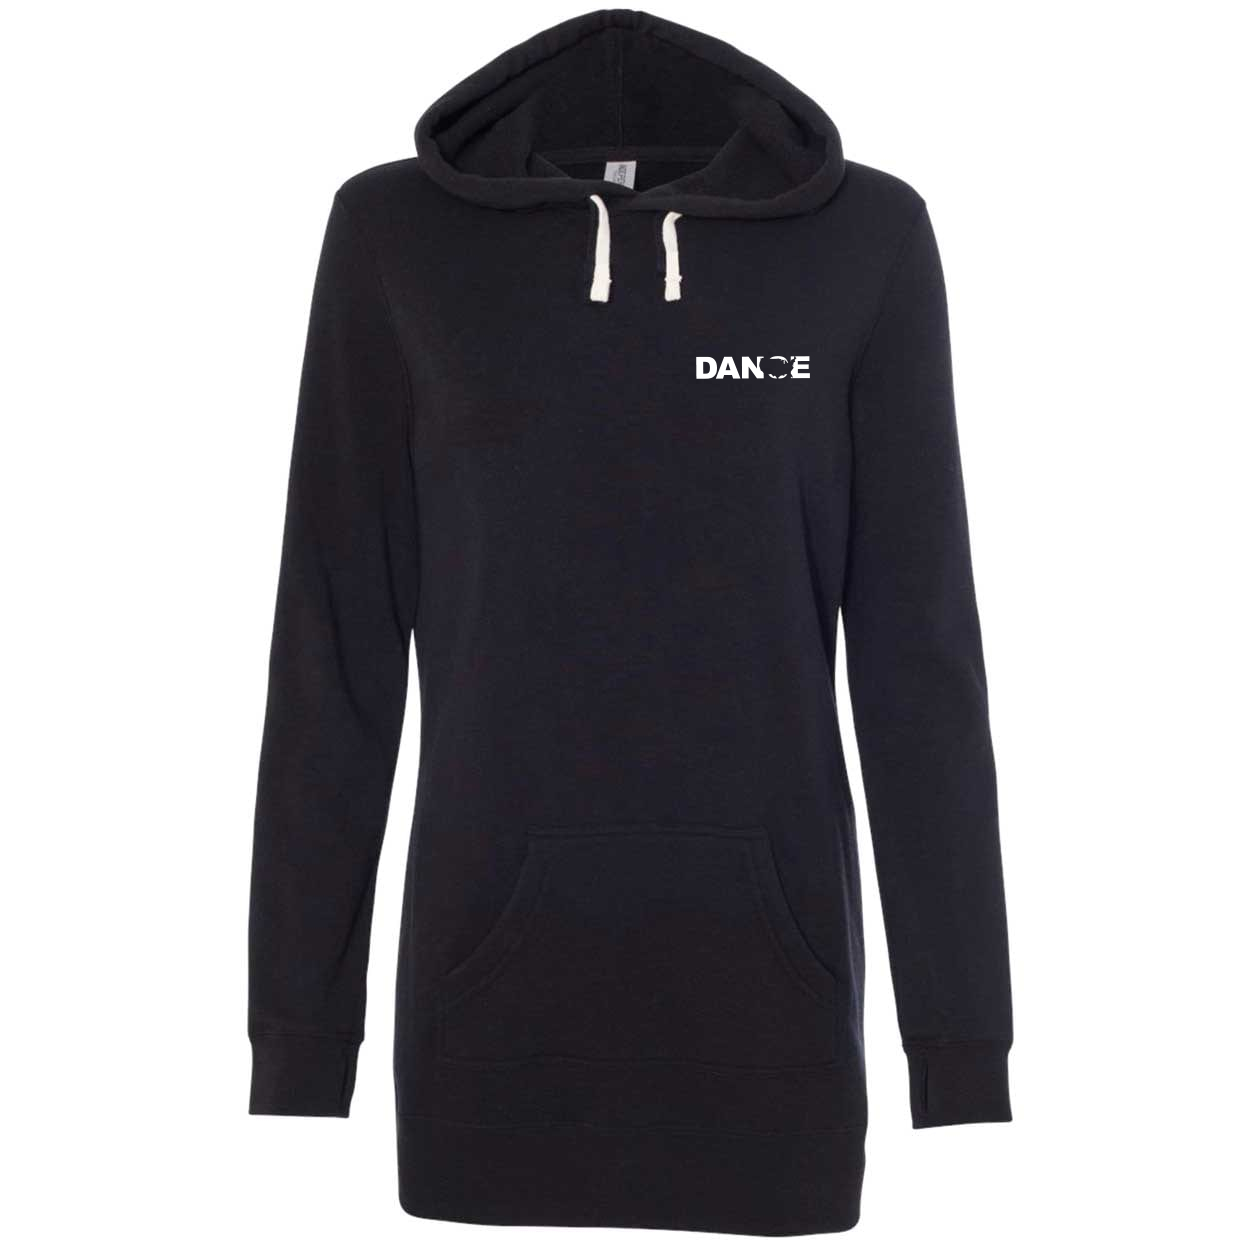 Dance United States Night Out Womens Pullover Hooded Sweatshirt Dress Black (White Logo)